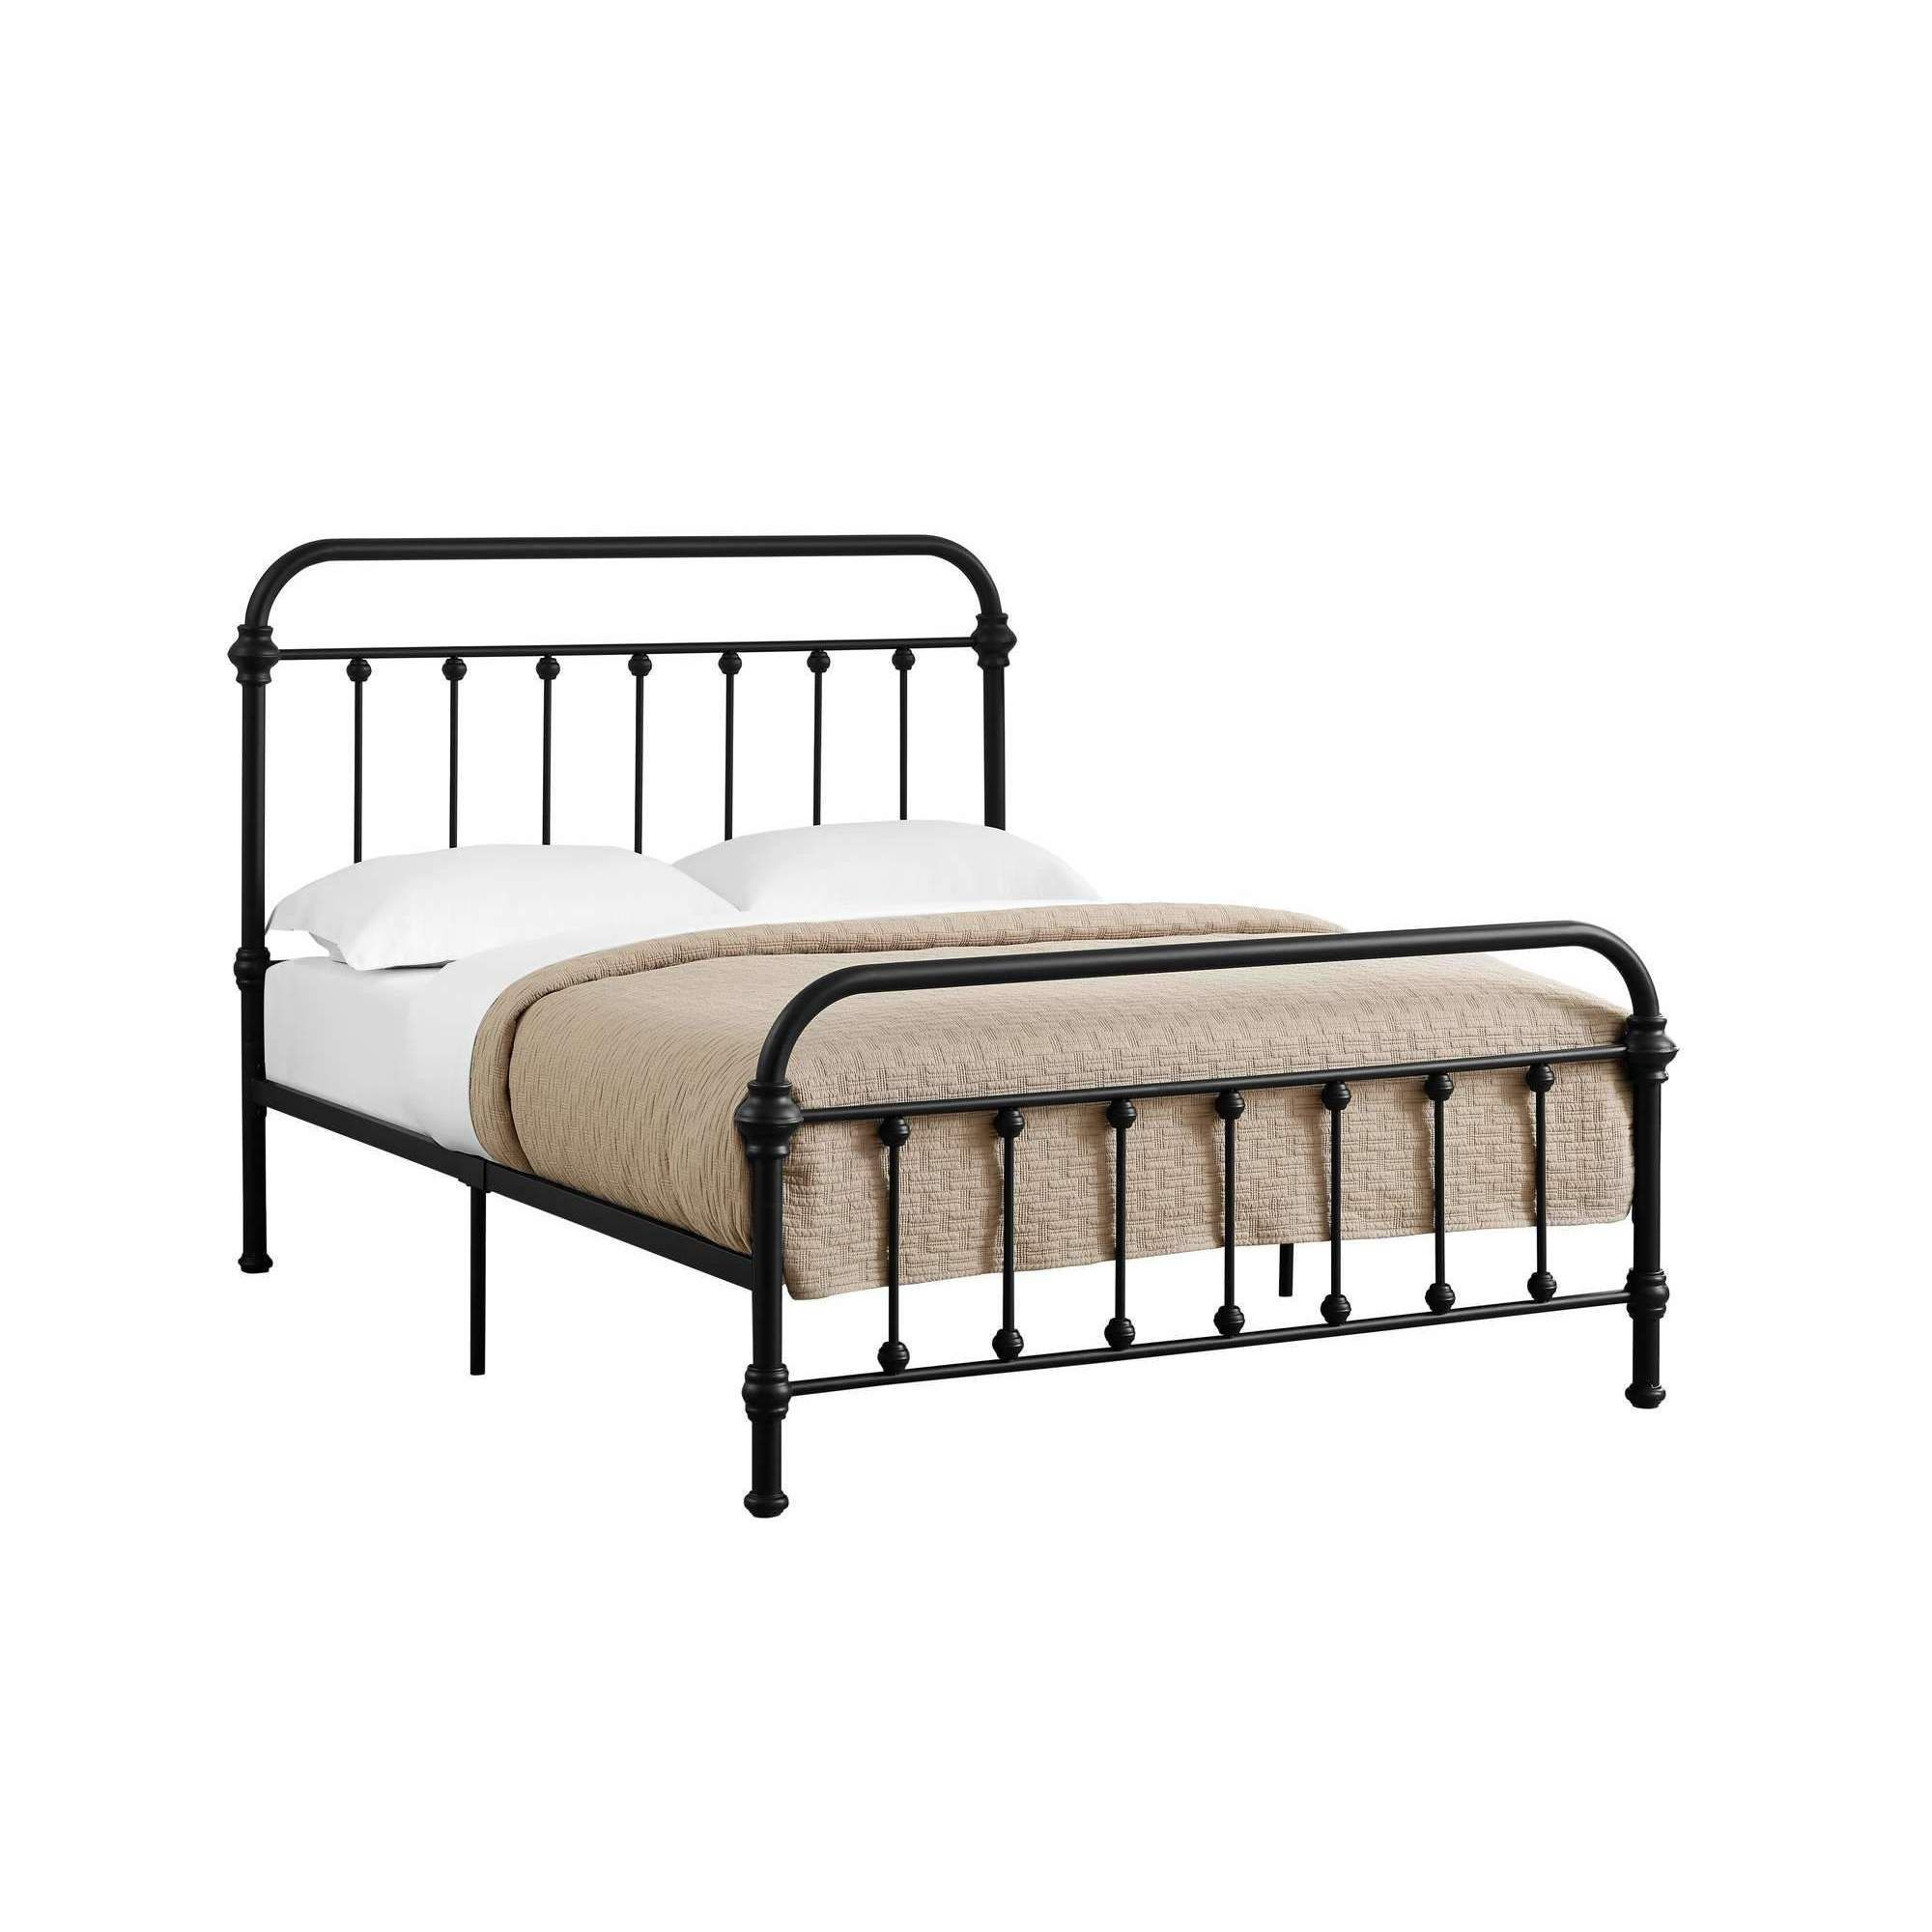 Bed Full Size Black Metal Frame Only Black metal bed